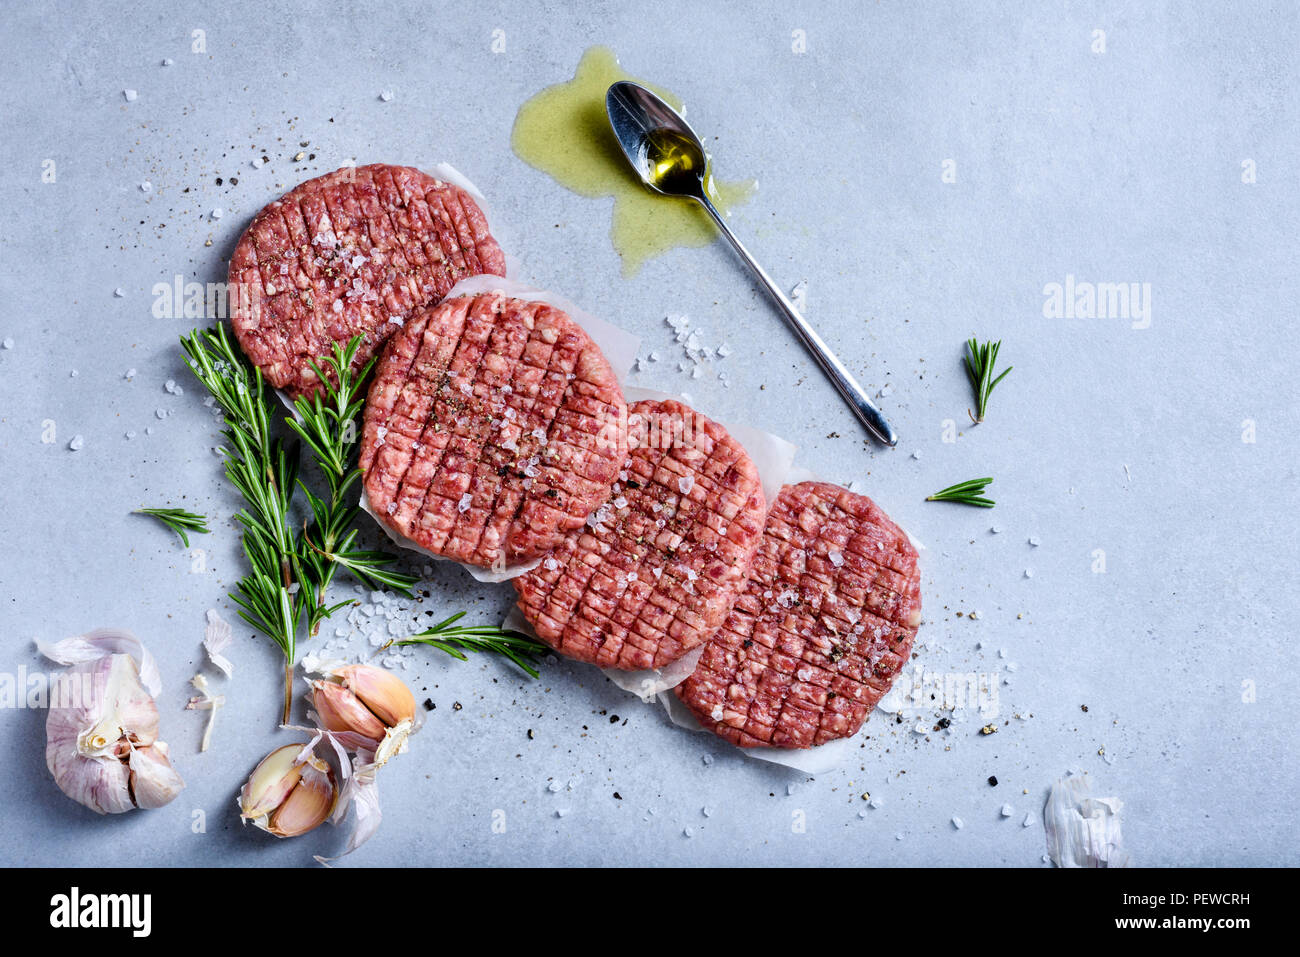 Homemade raw minced beef steak burgers with spices and herbs, organic healthy food cooking, top view, flat lay. - Stock Image